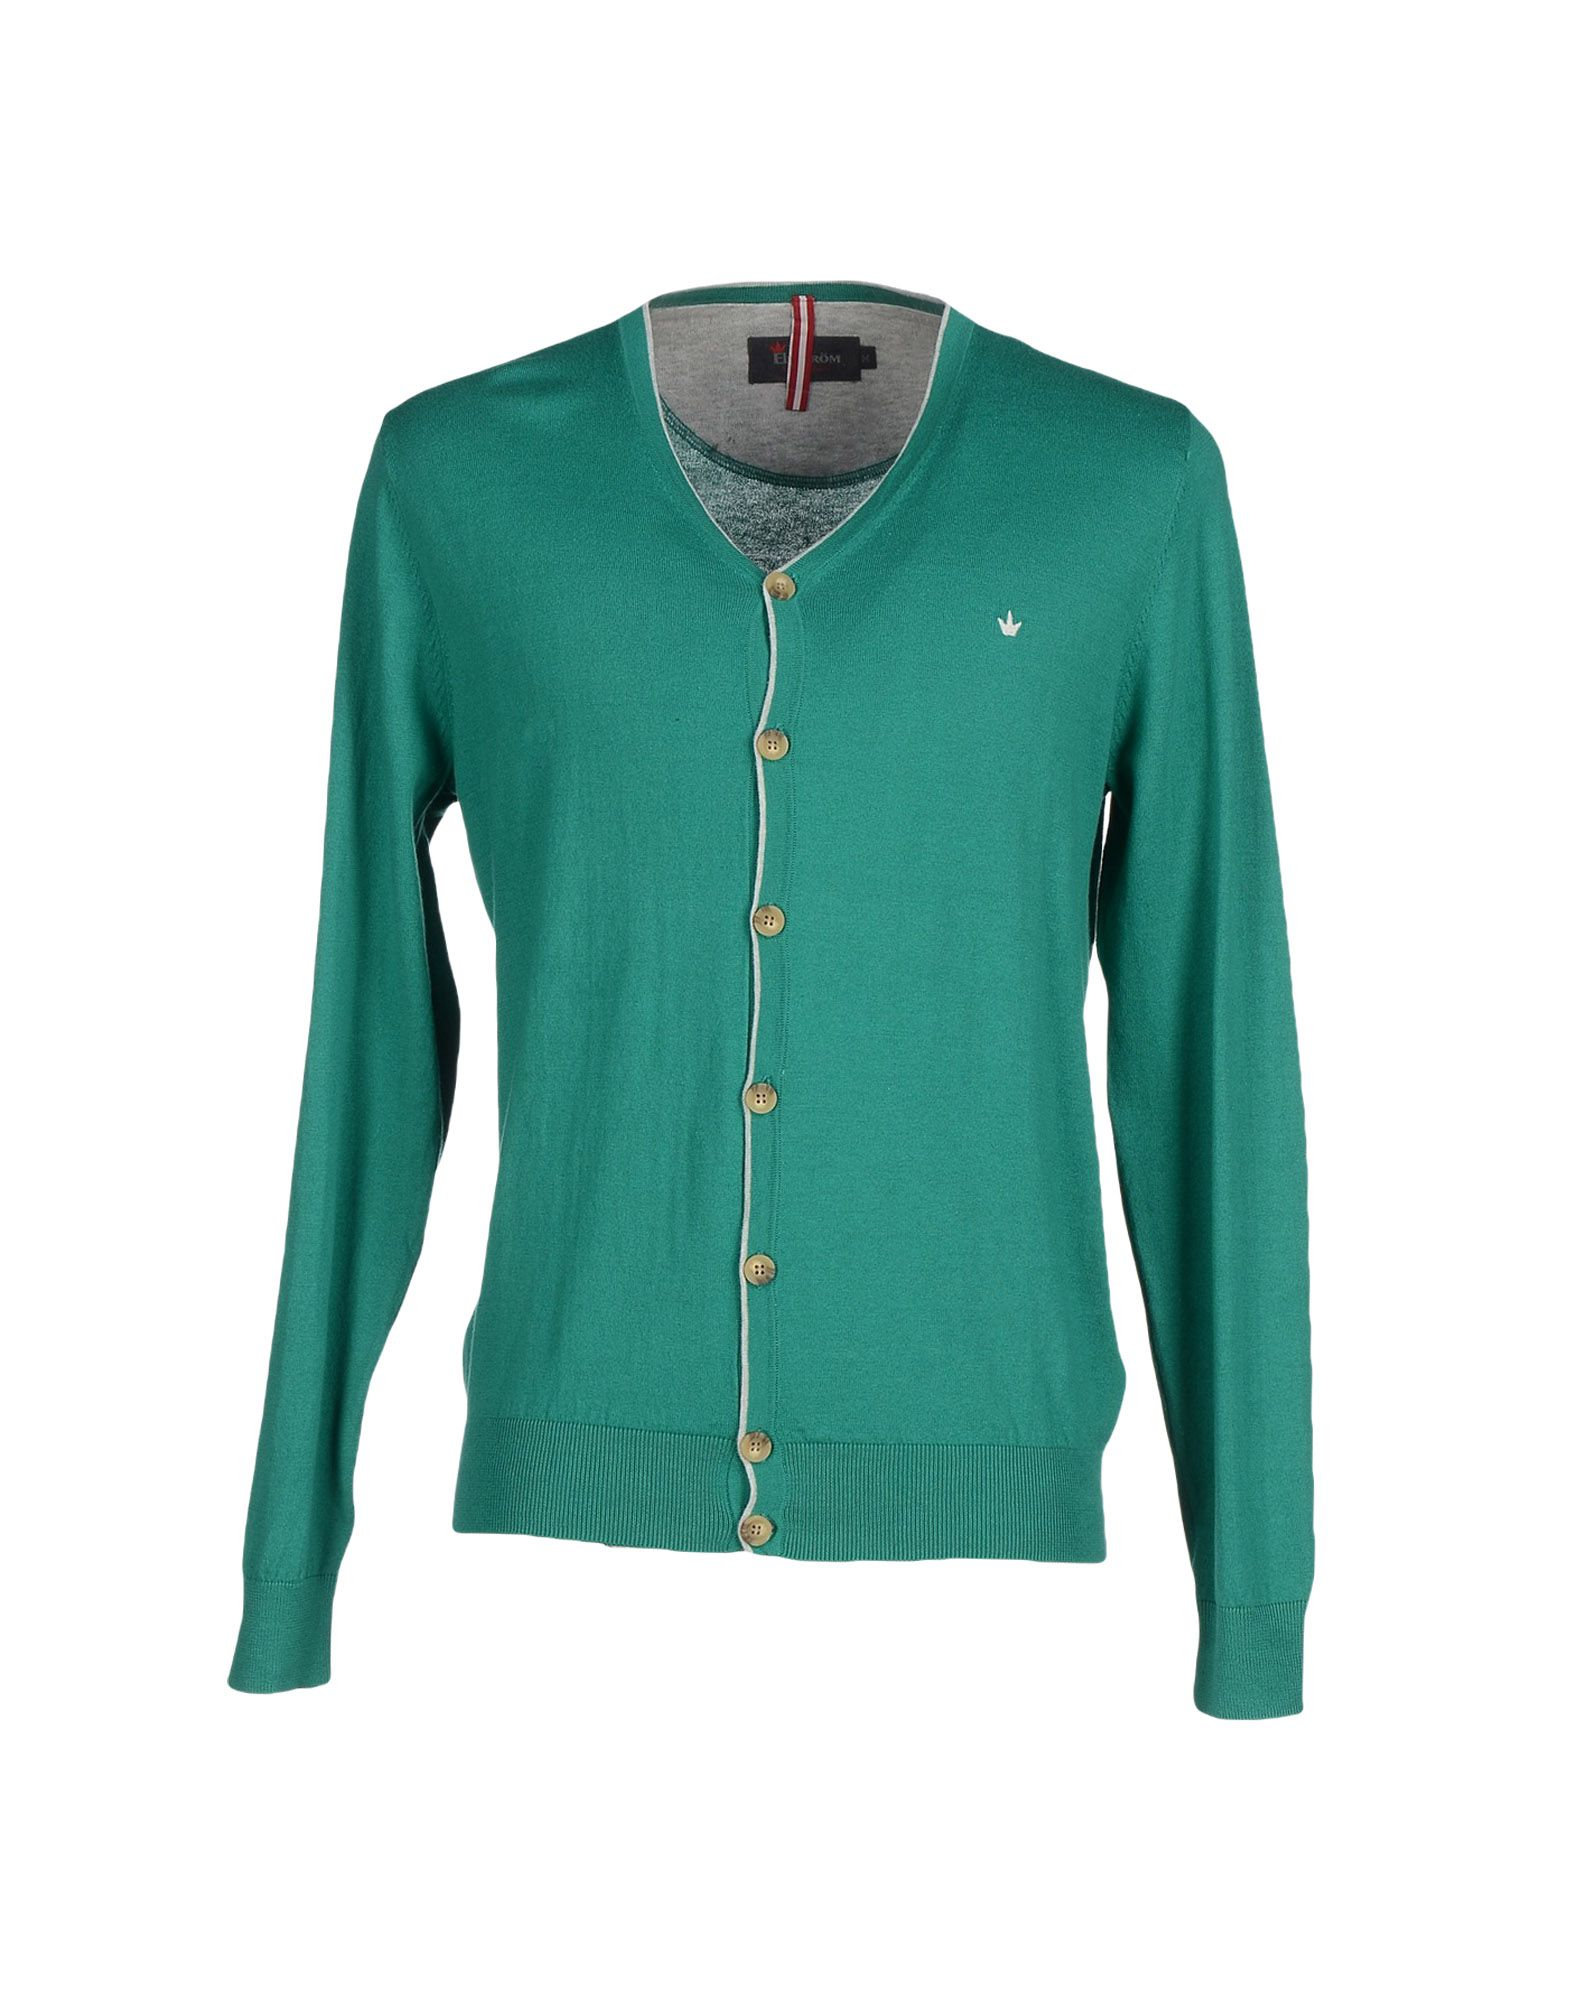 KNITWEAR - Jumpers Elvström Shop For Online Outlet Store For Sale Outlet Locations Cheap Price UZt95I8